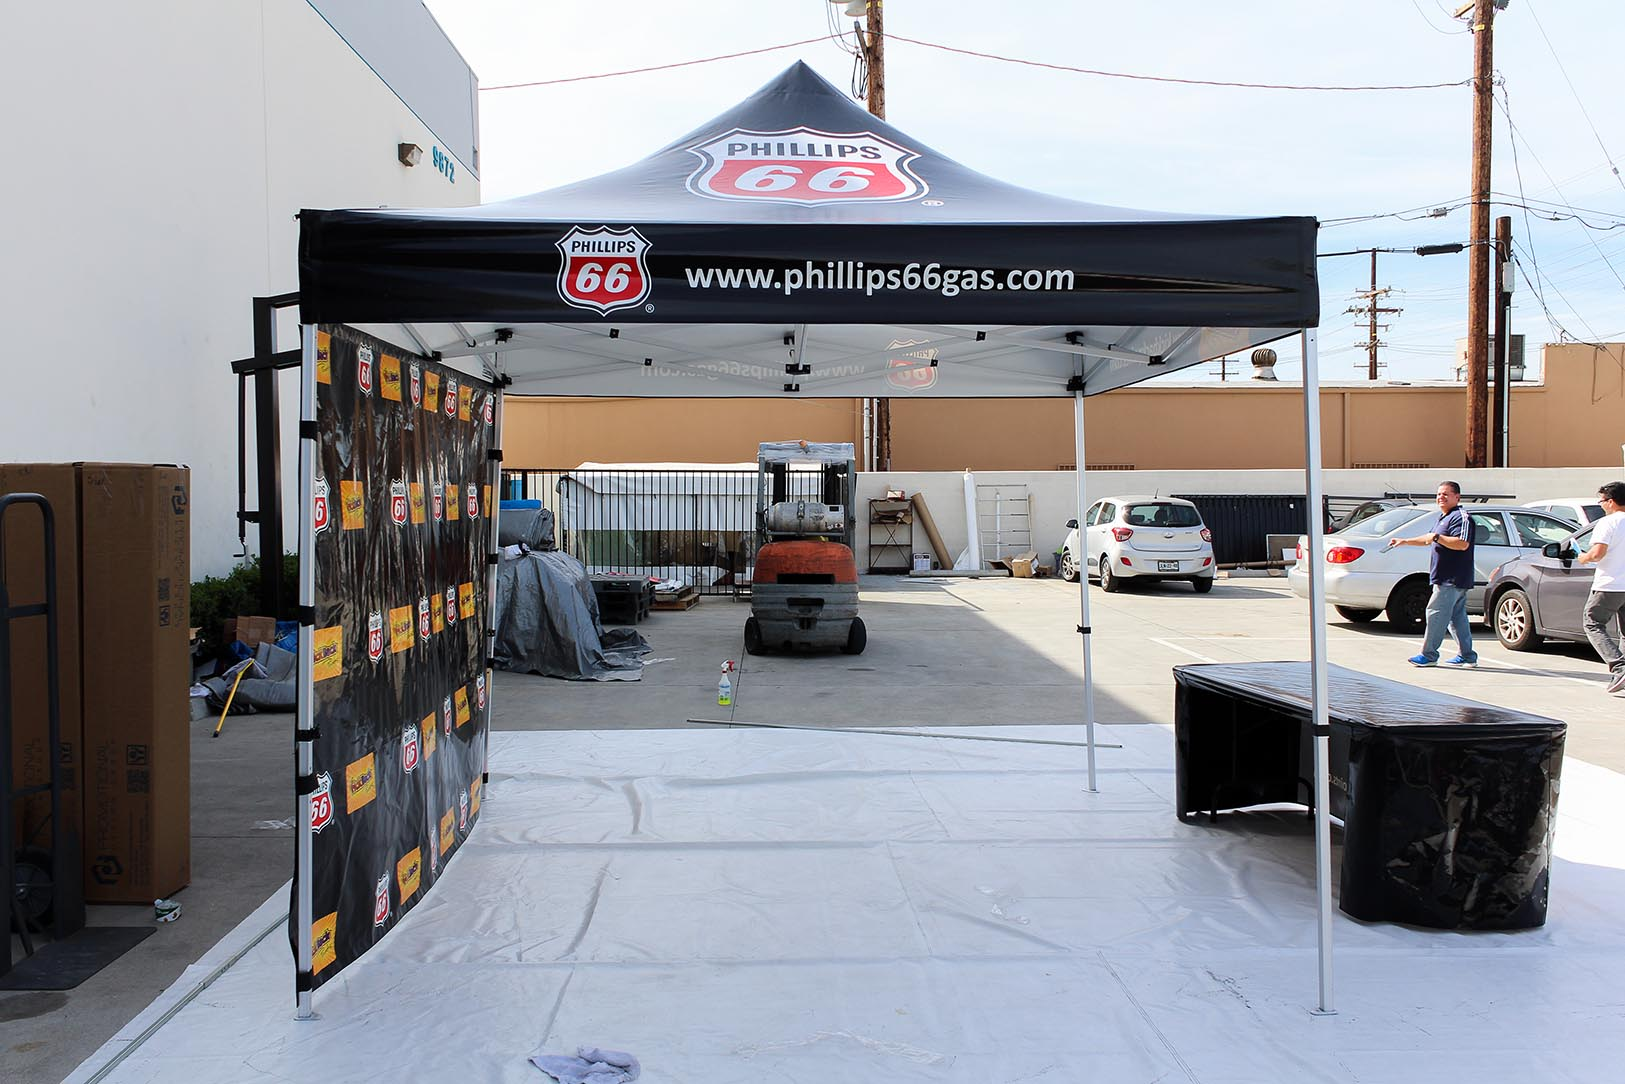 philips-66-gas-10x10-tent